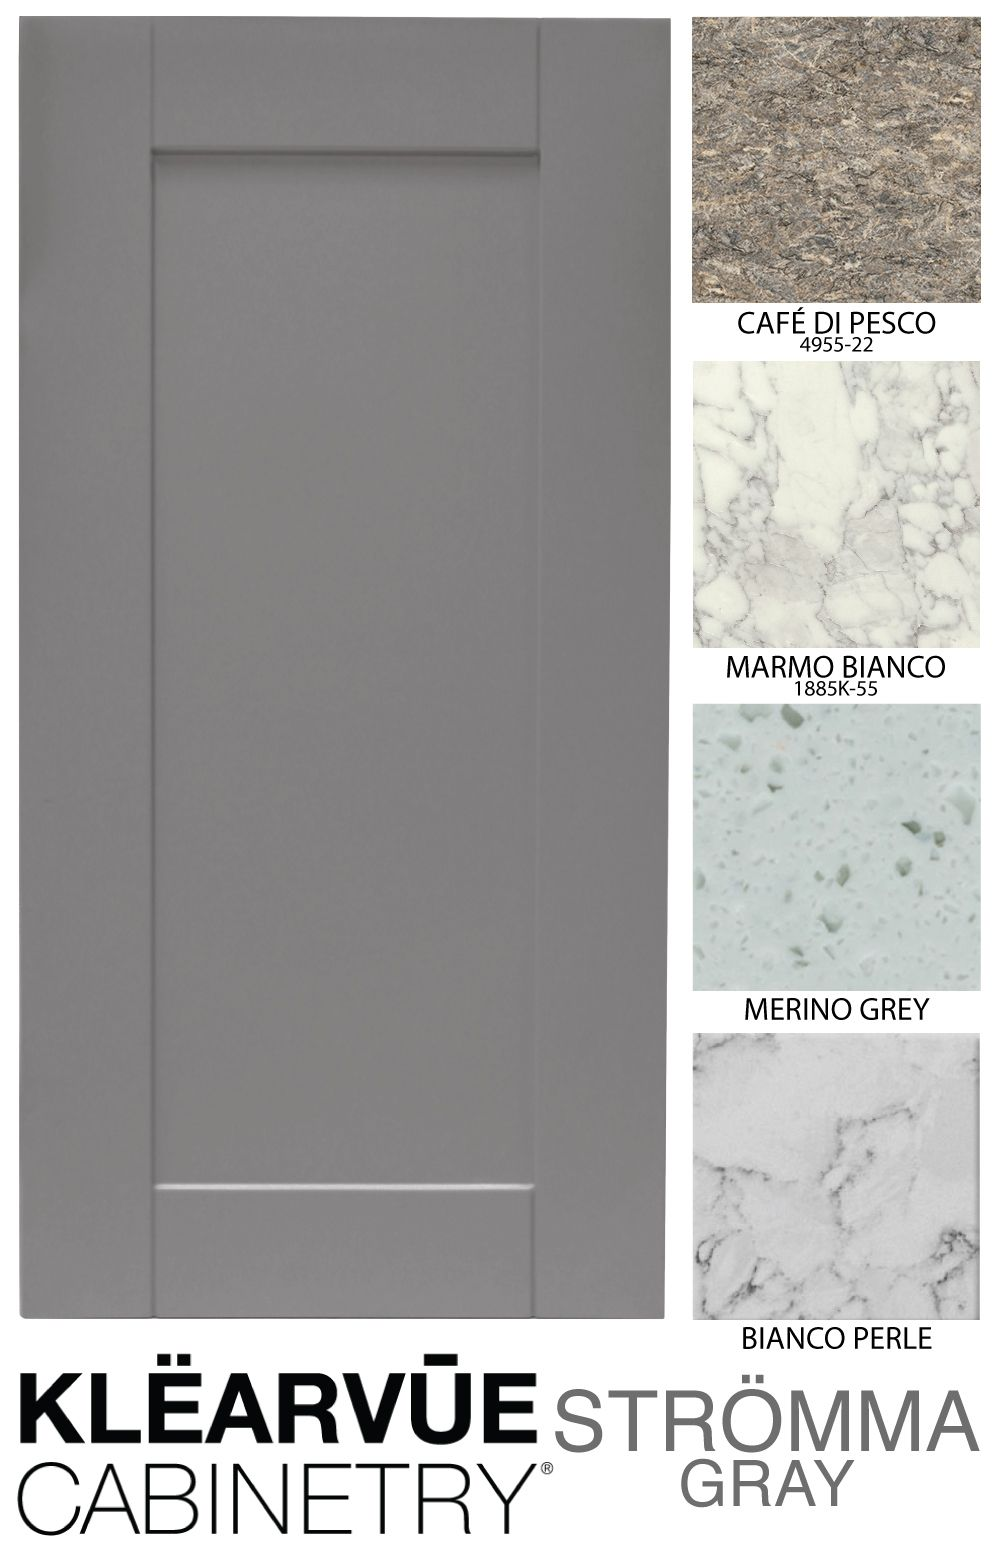 Stromma Gray Cabinets Will Fit With Any Color Pallet In Any Home Menards Kitchen Cabinets Grey Cabinets Grey Countertops